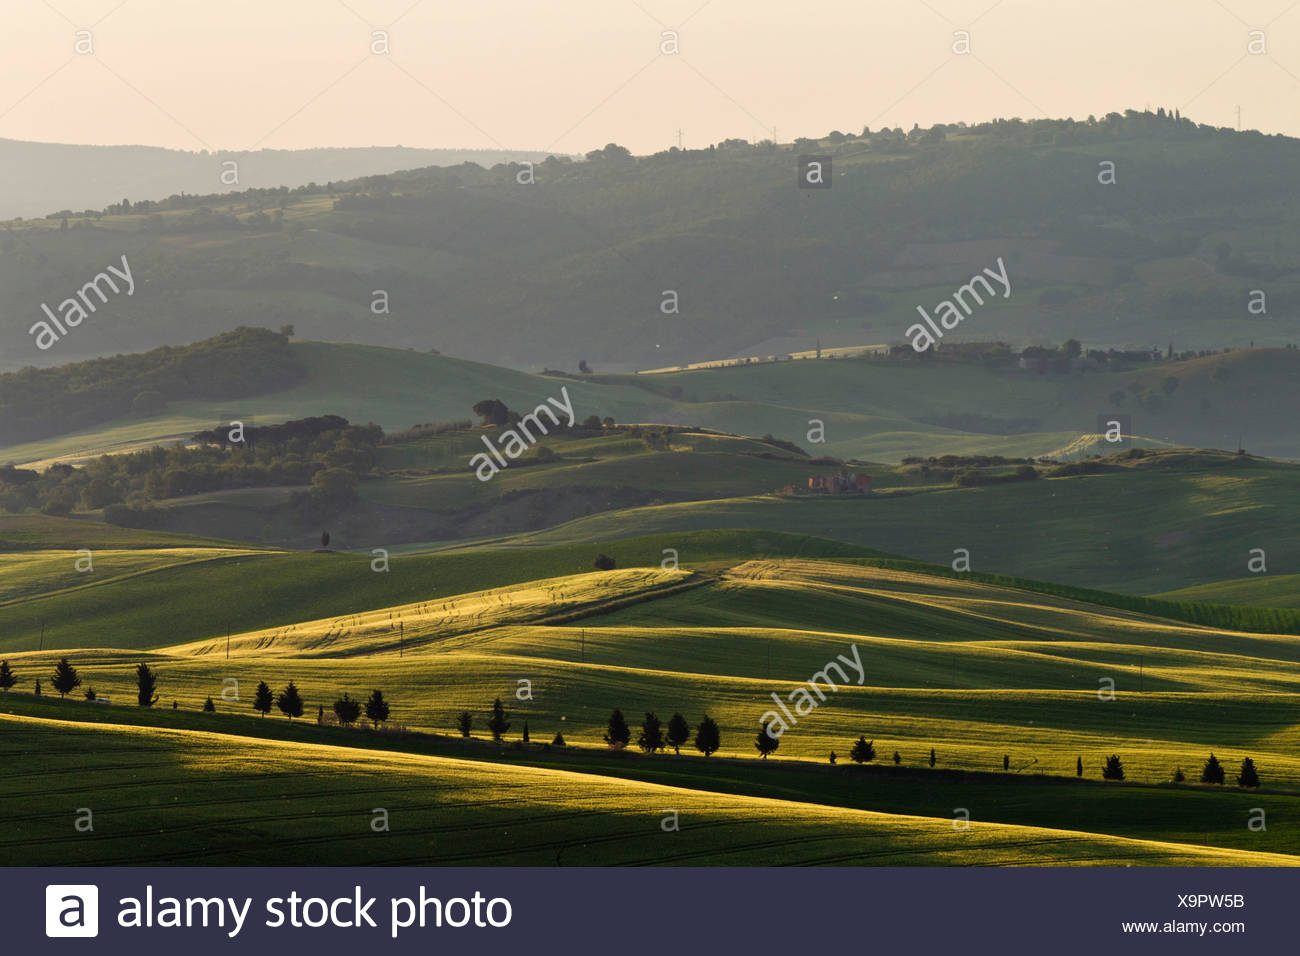 Italy, Tuscany, Crete, View of hilly landscape - Stock Image